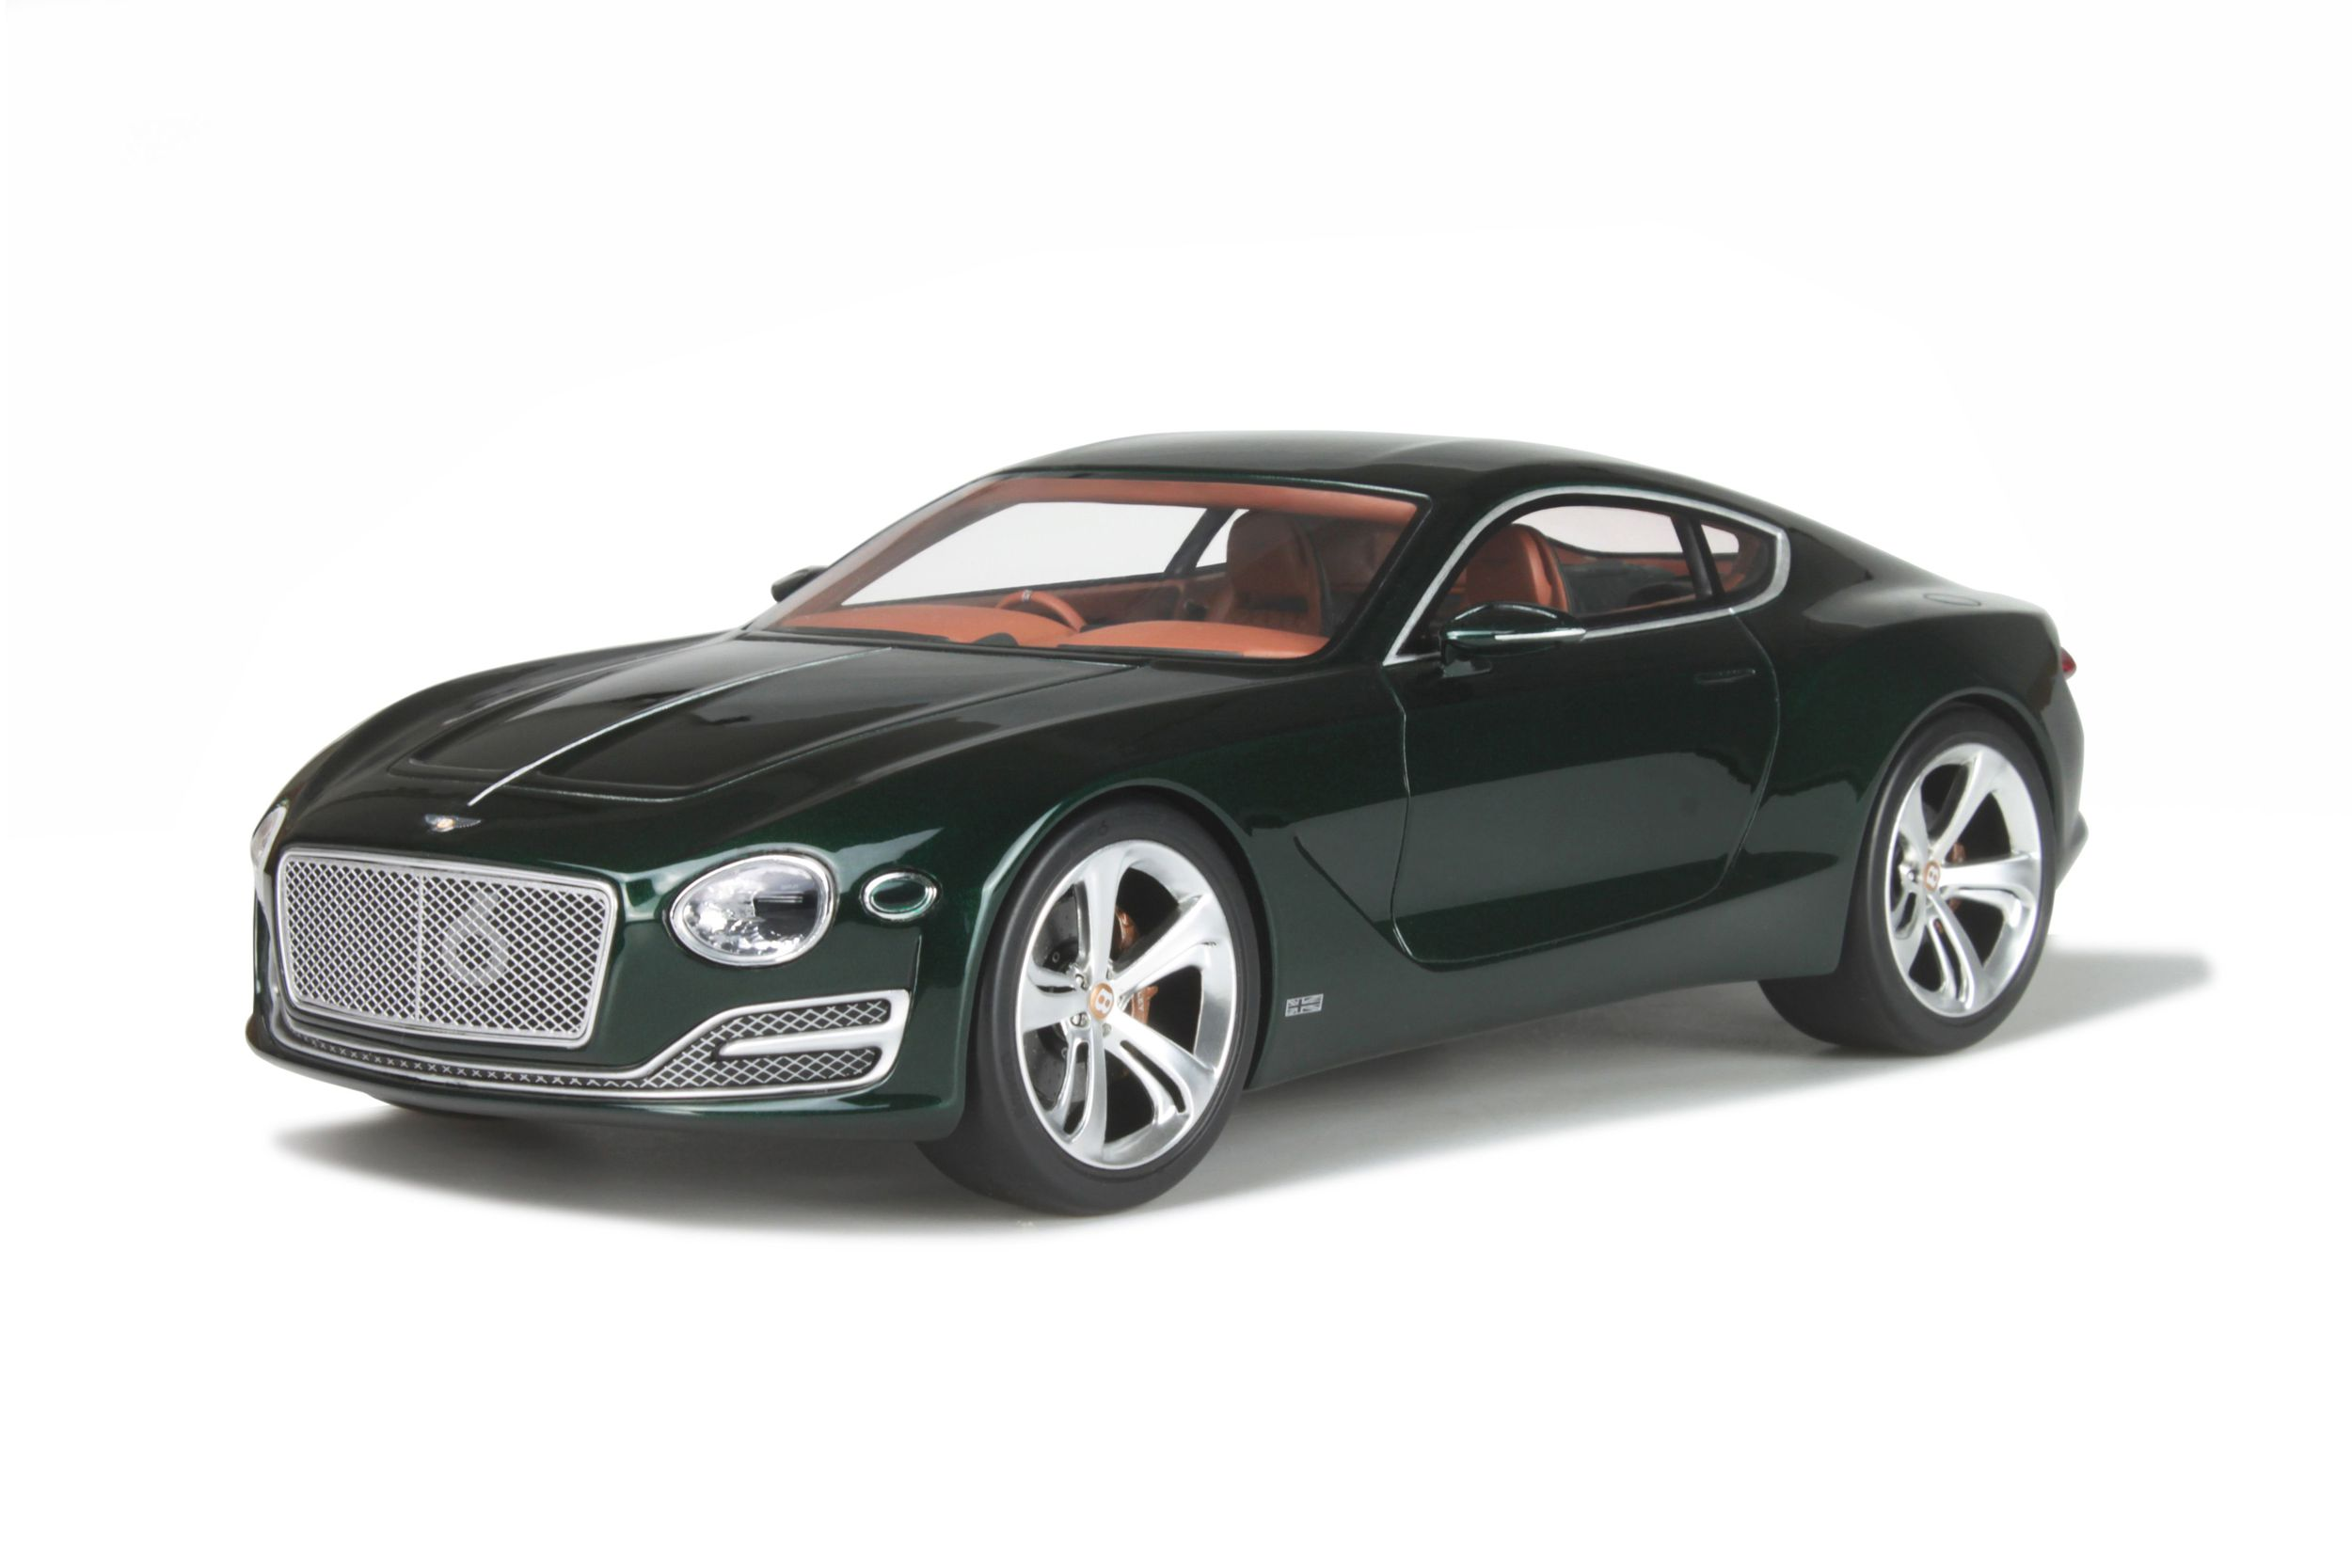 Bentley Exp 10 >> Bentley Exp 10 Speed 6 Concept